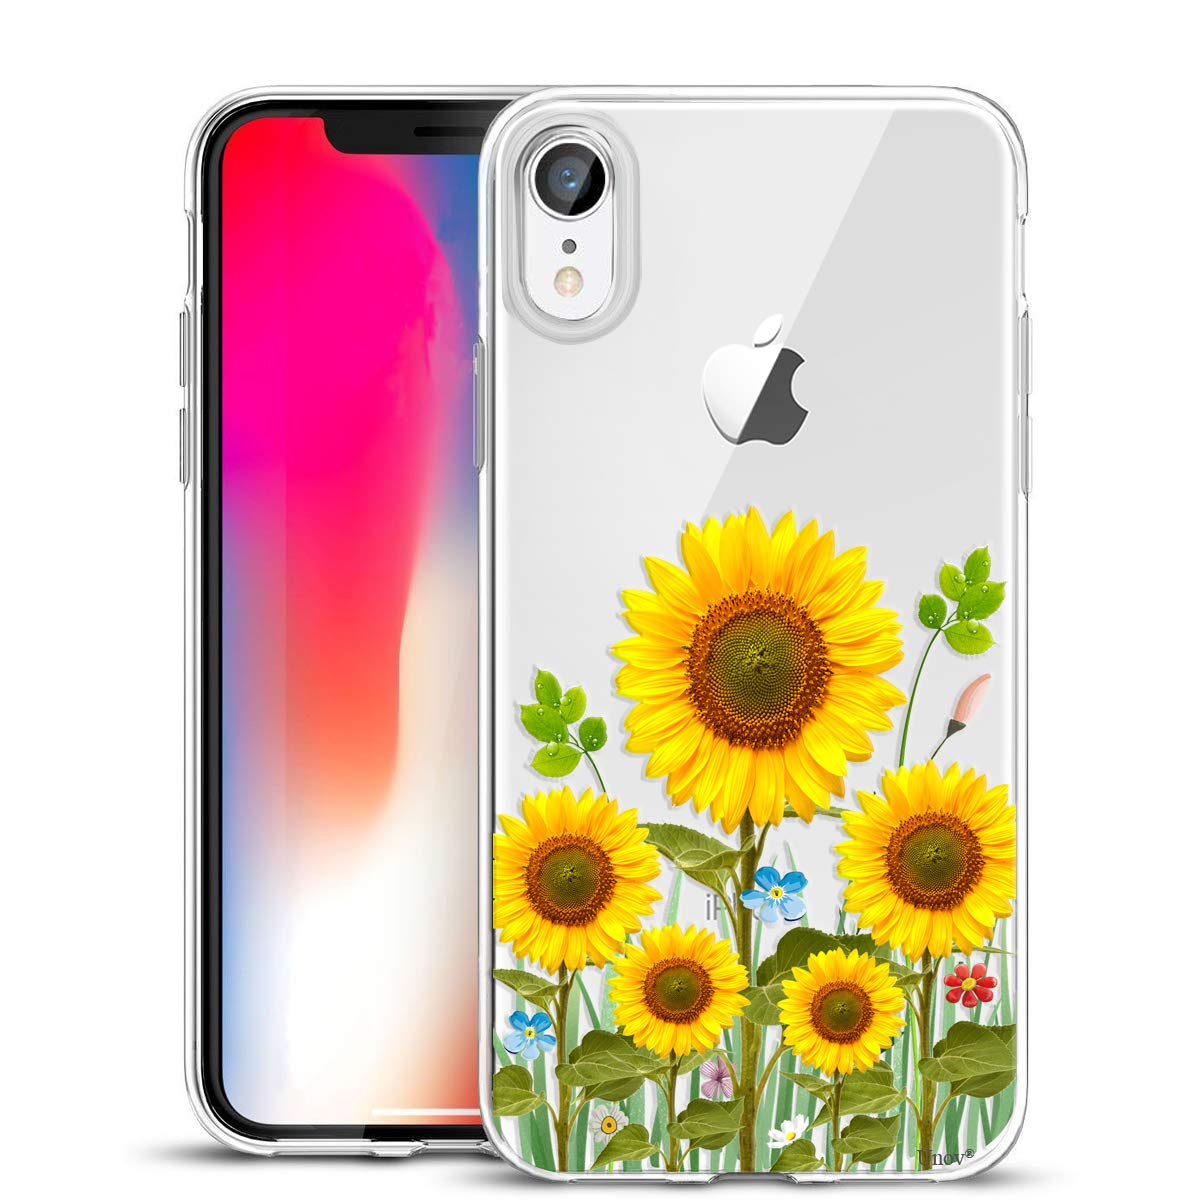 Unov Case Clear with Design Slim Protective Soft TPU Bumper Embossed Flower Pattern [Support Wireless Charging] Cover for iPhone XR 6.1 Inch(Sunflower Blossom)